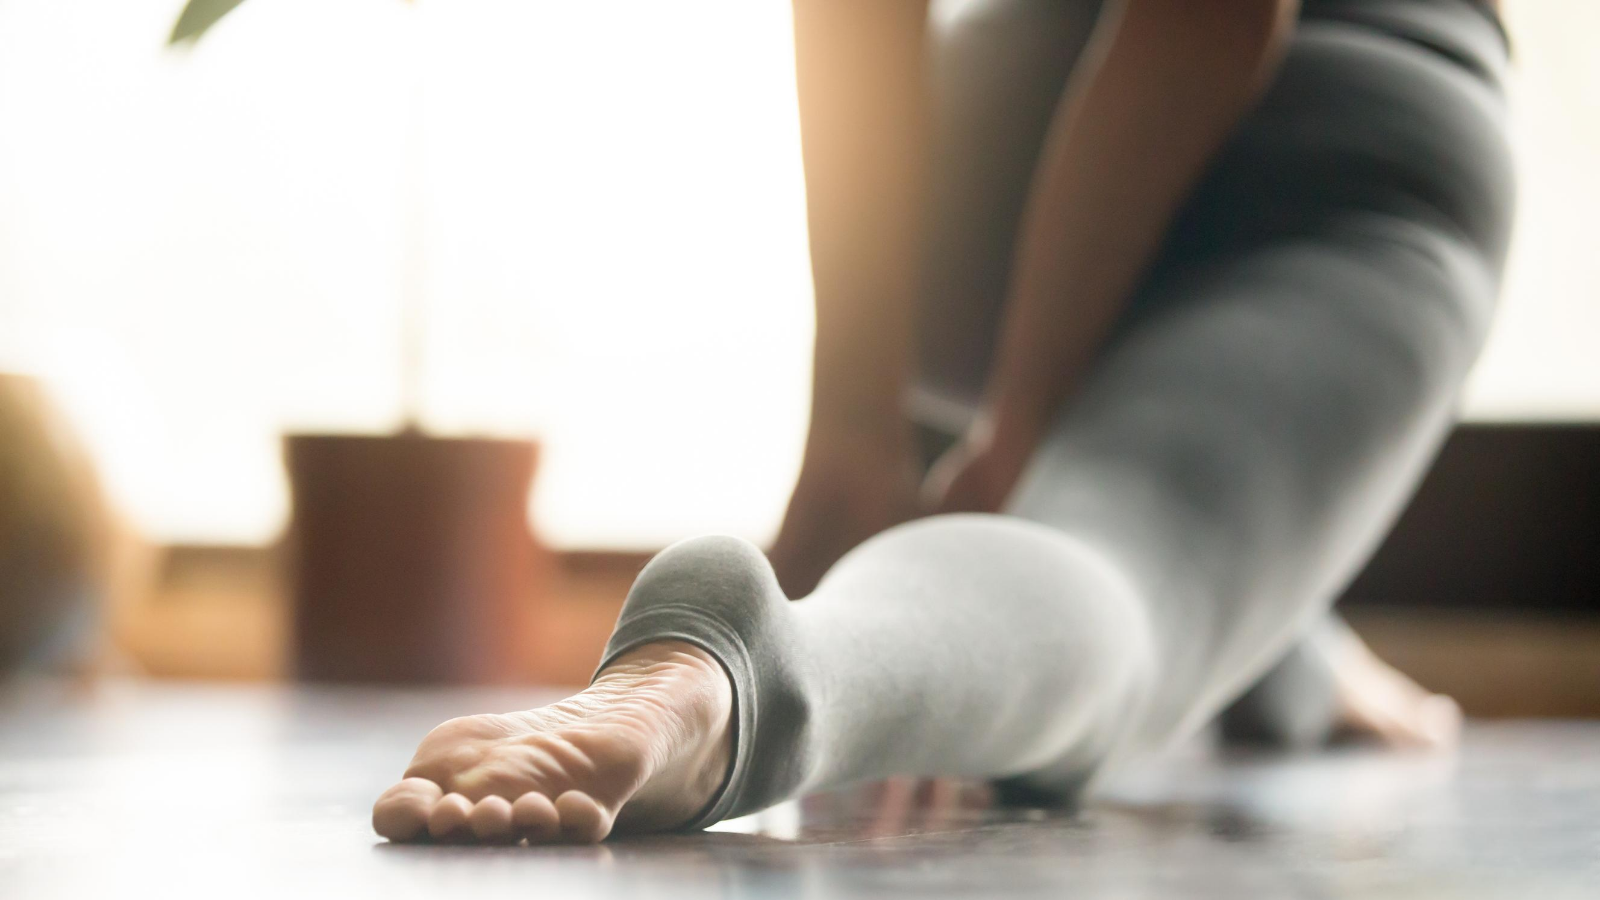 beginner yoga student learns how to practice yoga poses that relieve restless leg syndrome